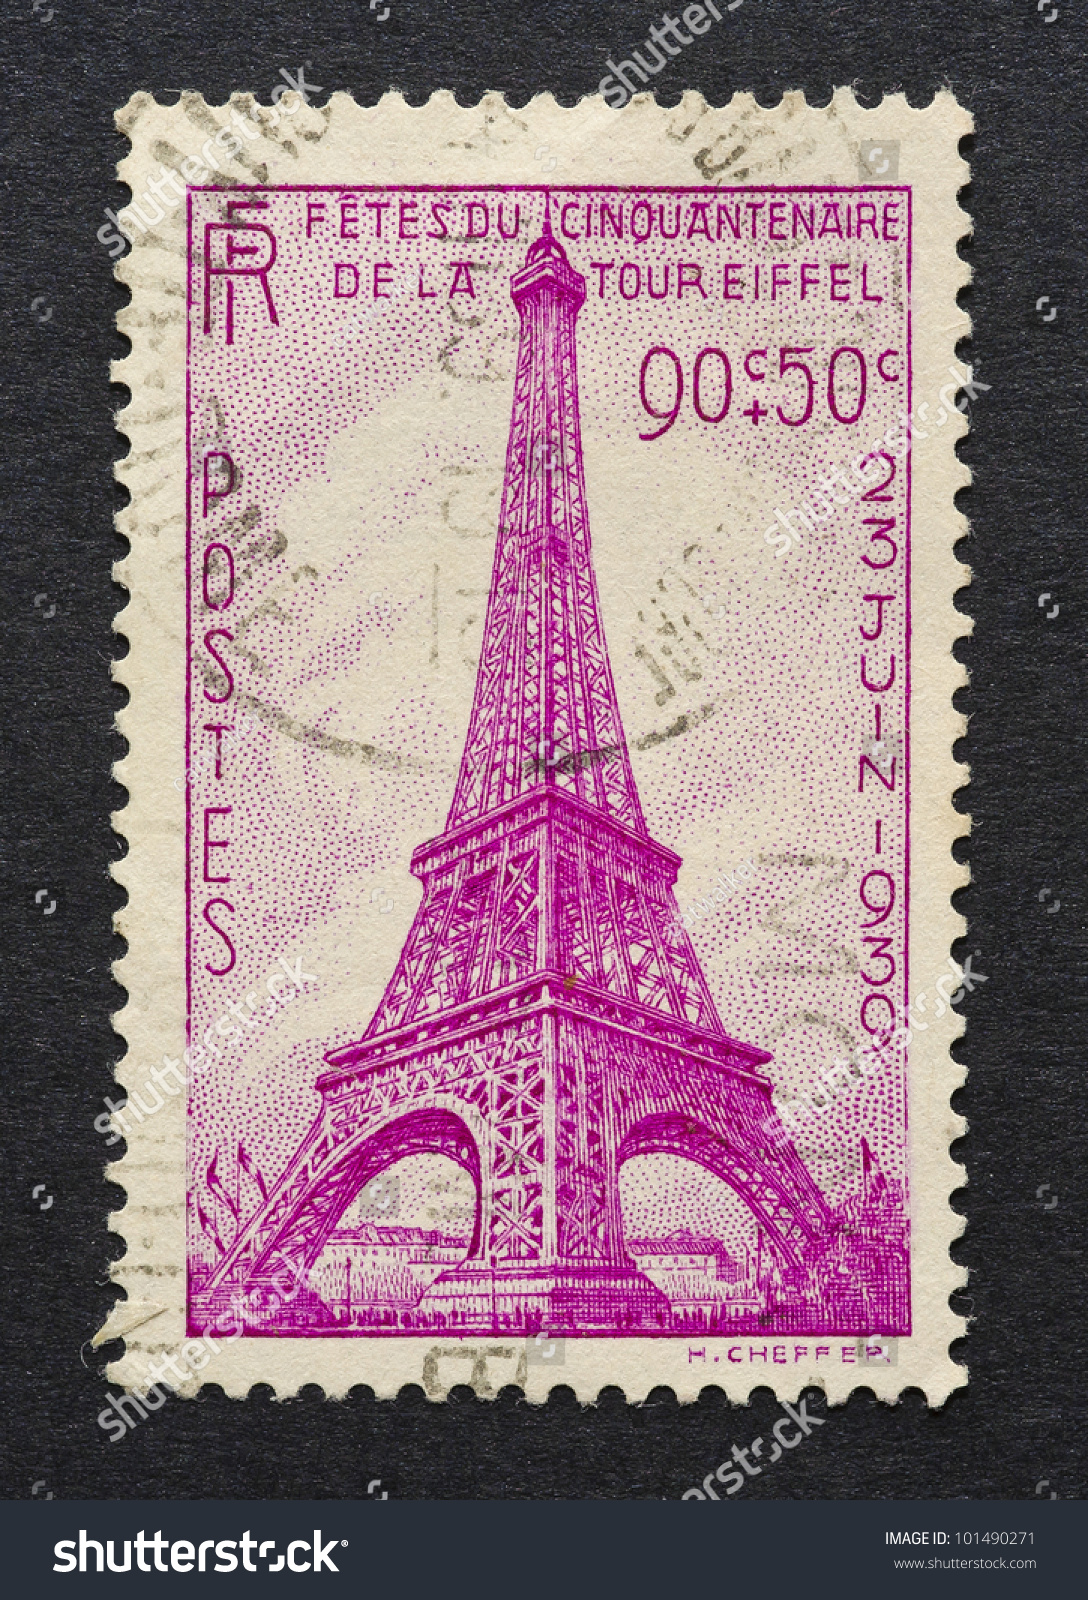 Images Of Stamped Concrete Patios: France Circa 1939 Postage Stamp Printed Stock Photo